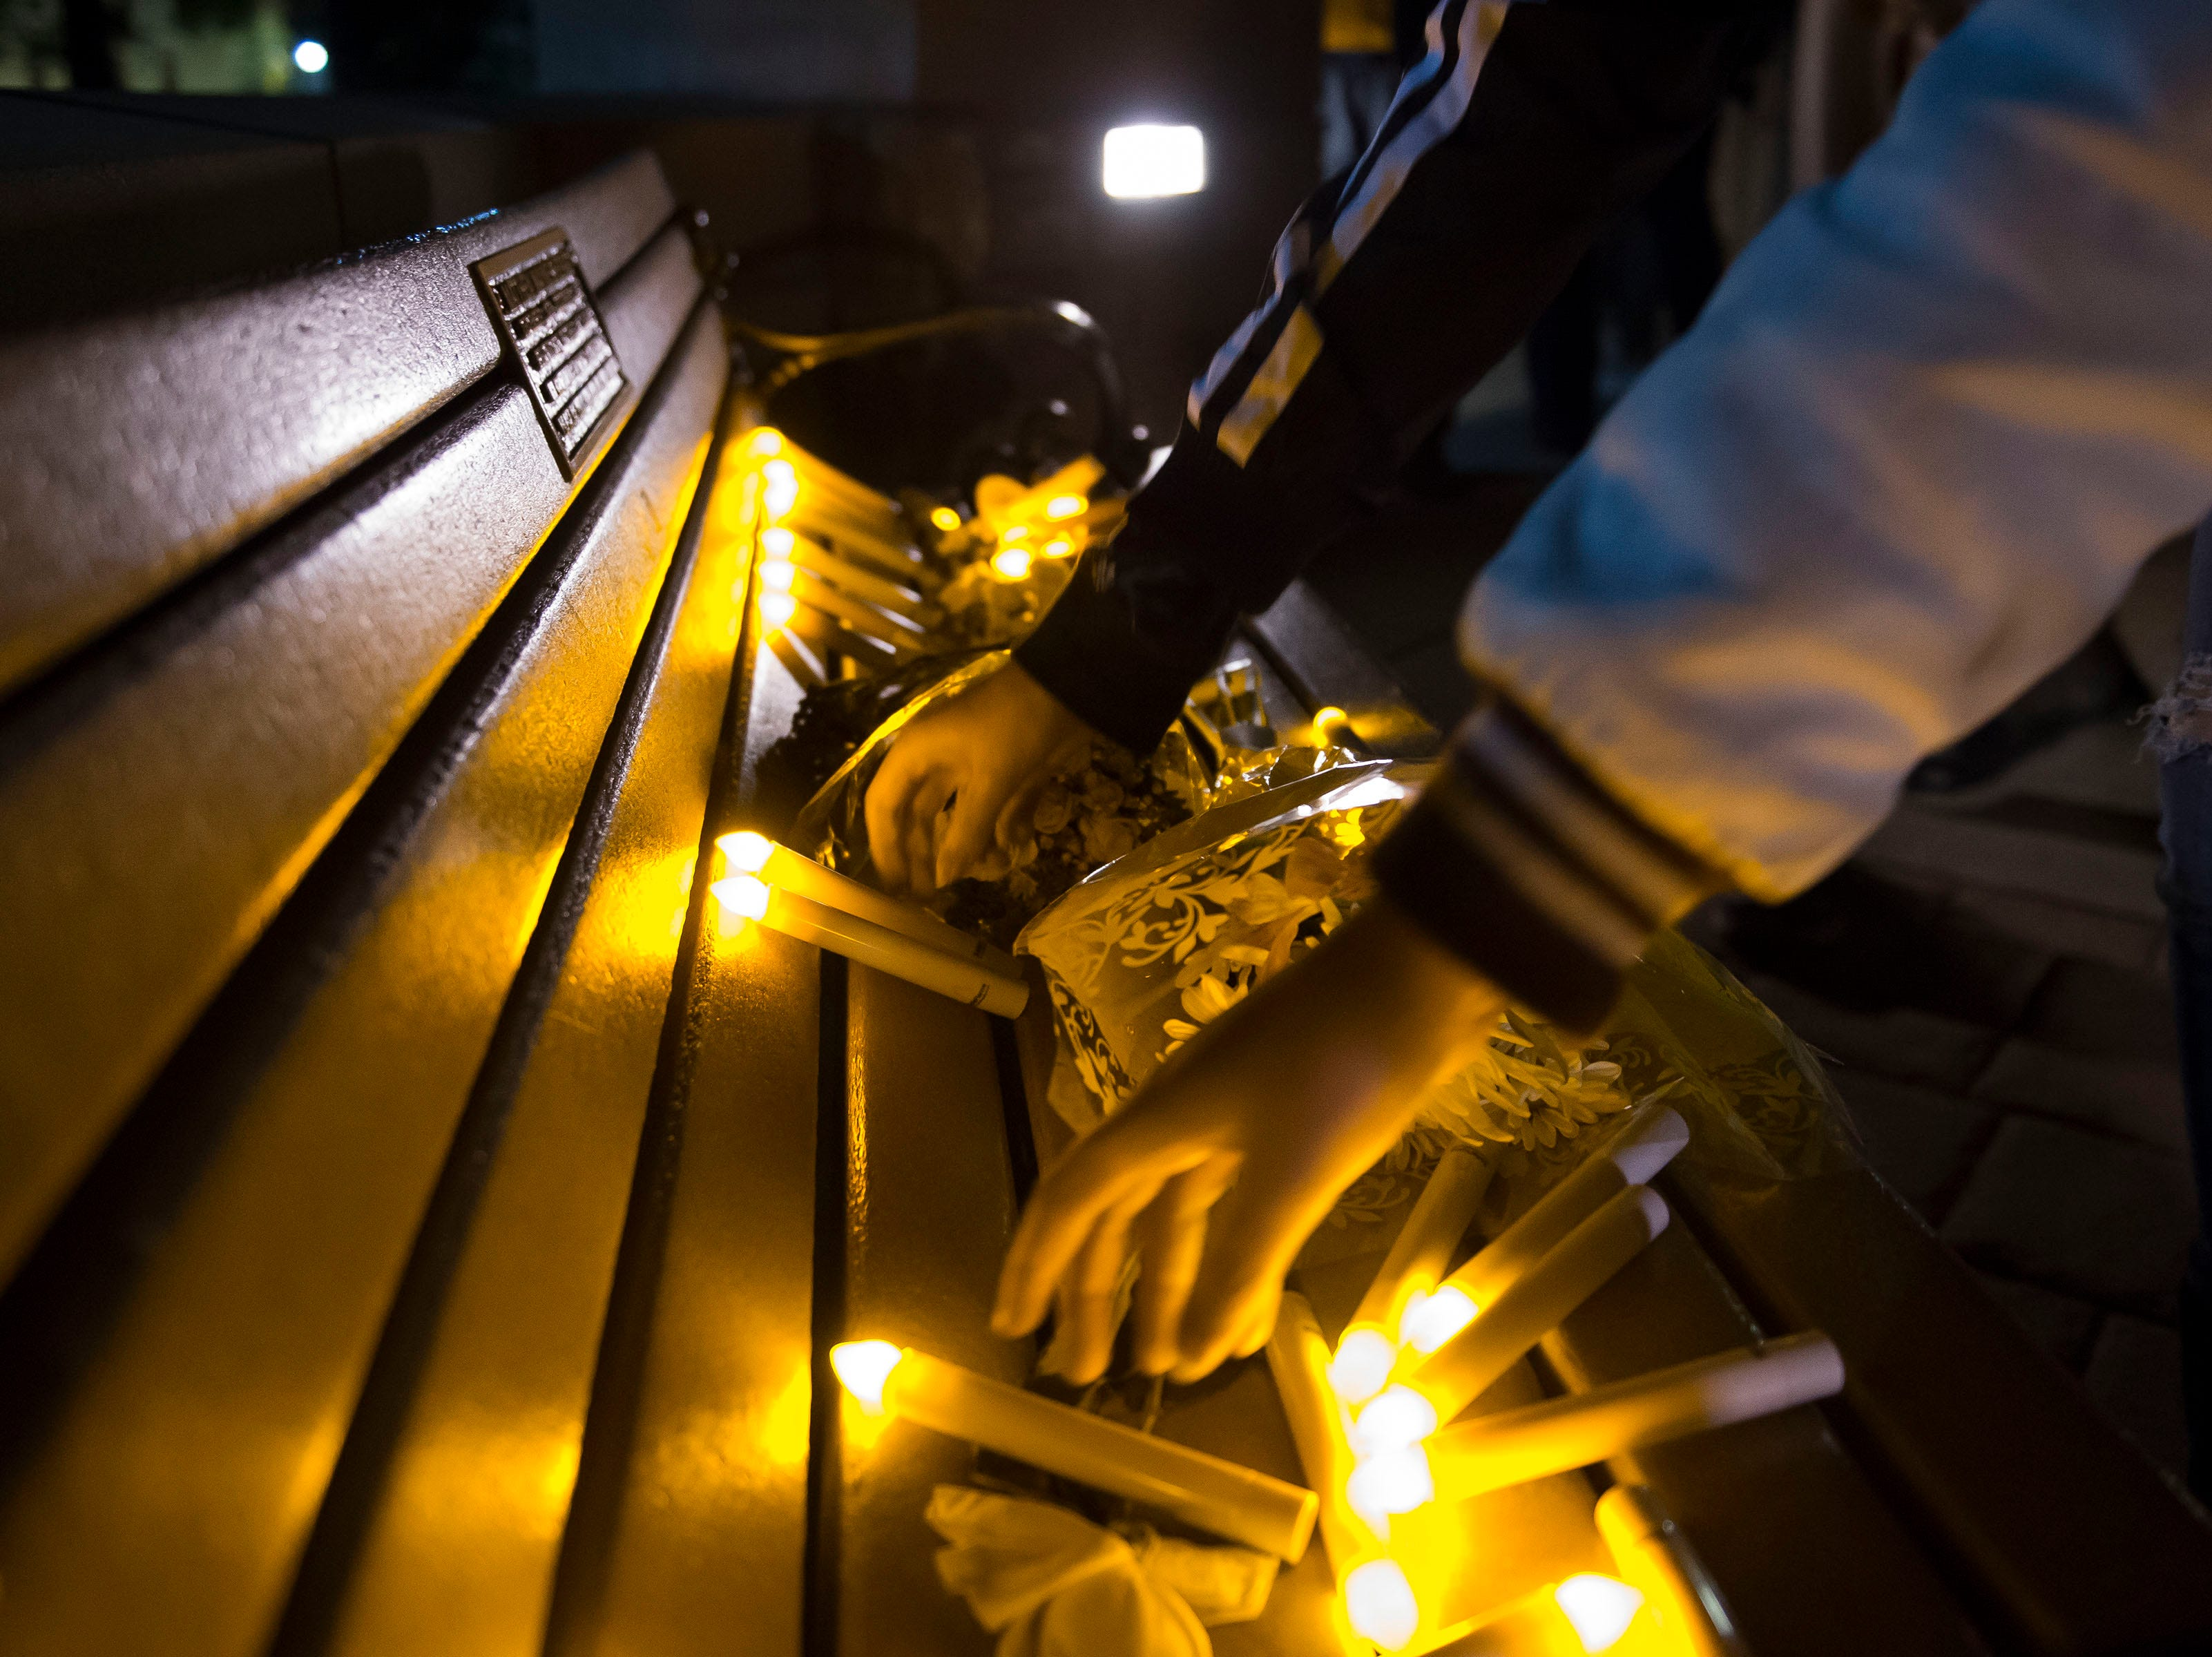 Vigil participants set their flameless candles down on a bench dedicated to Matthew Shepard after a candlelight vigil on the 20th anniversary of Shepard's death on Friday, Oct. 12, 2018, at Prexy's Pasture on the University of Wyoming campus in Laramie, Wyo.